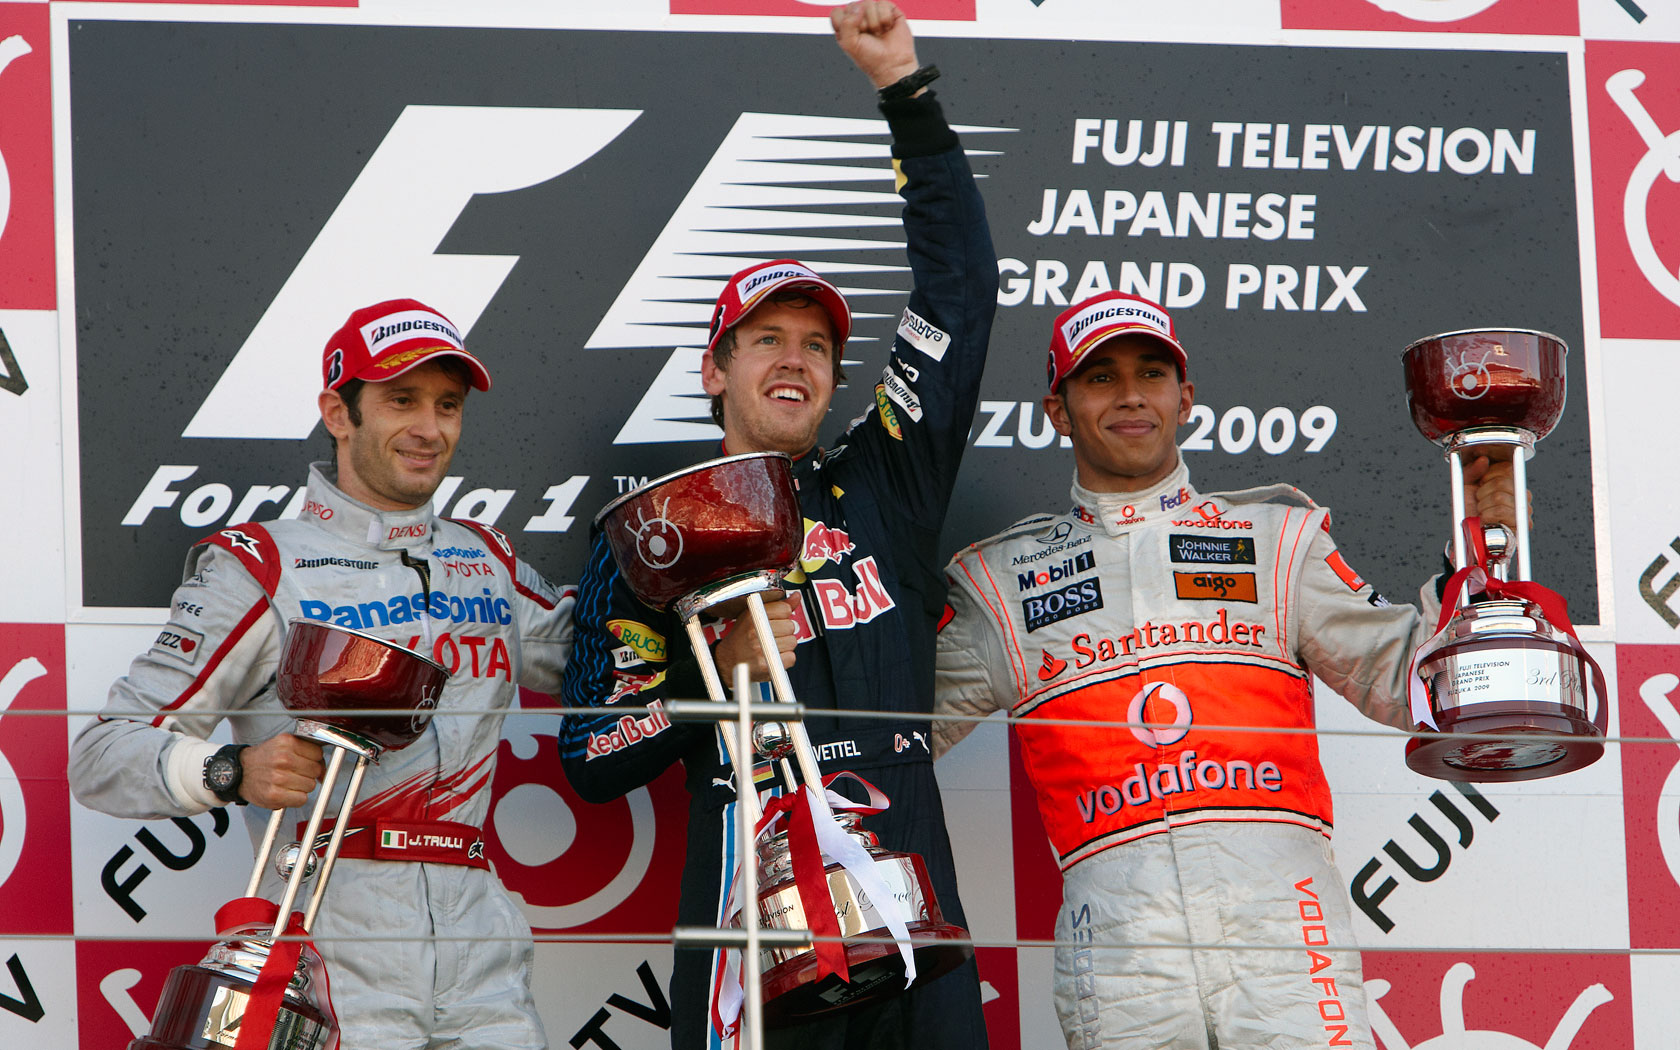 Results 2009 Formula 1 Grand Prix of Japan